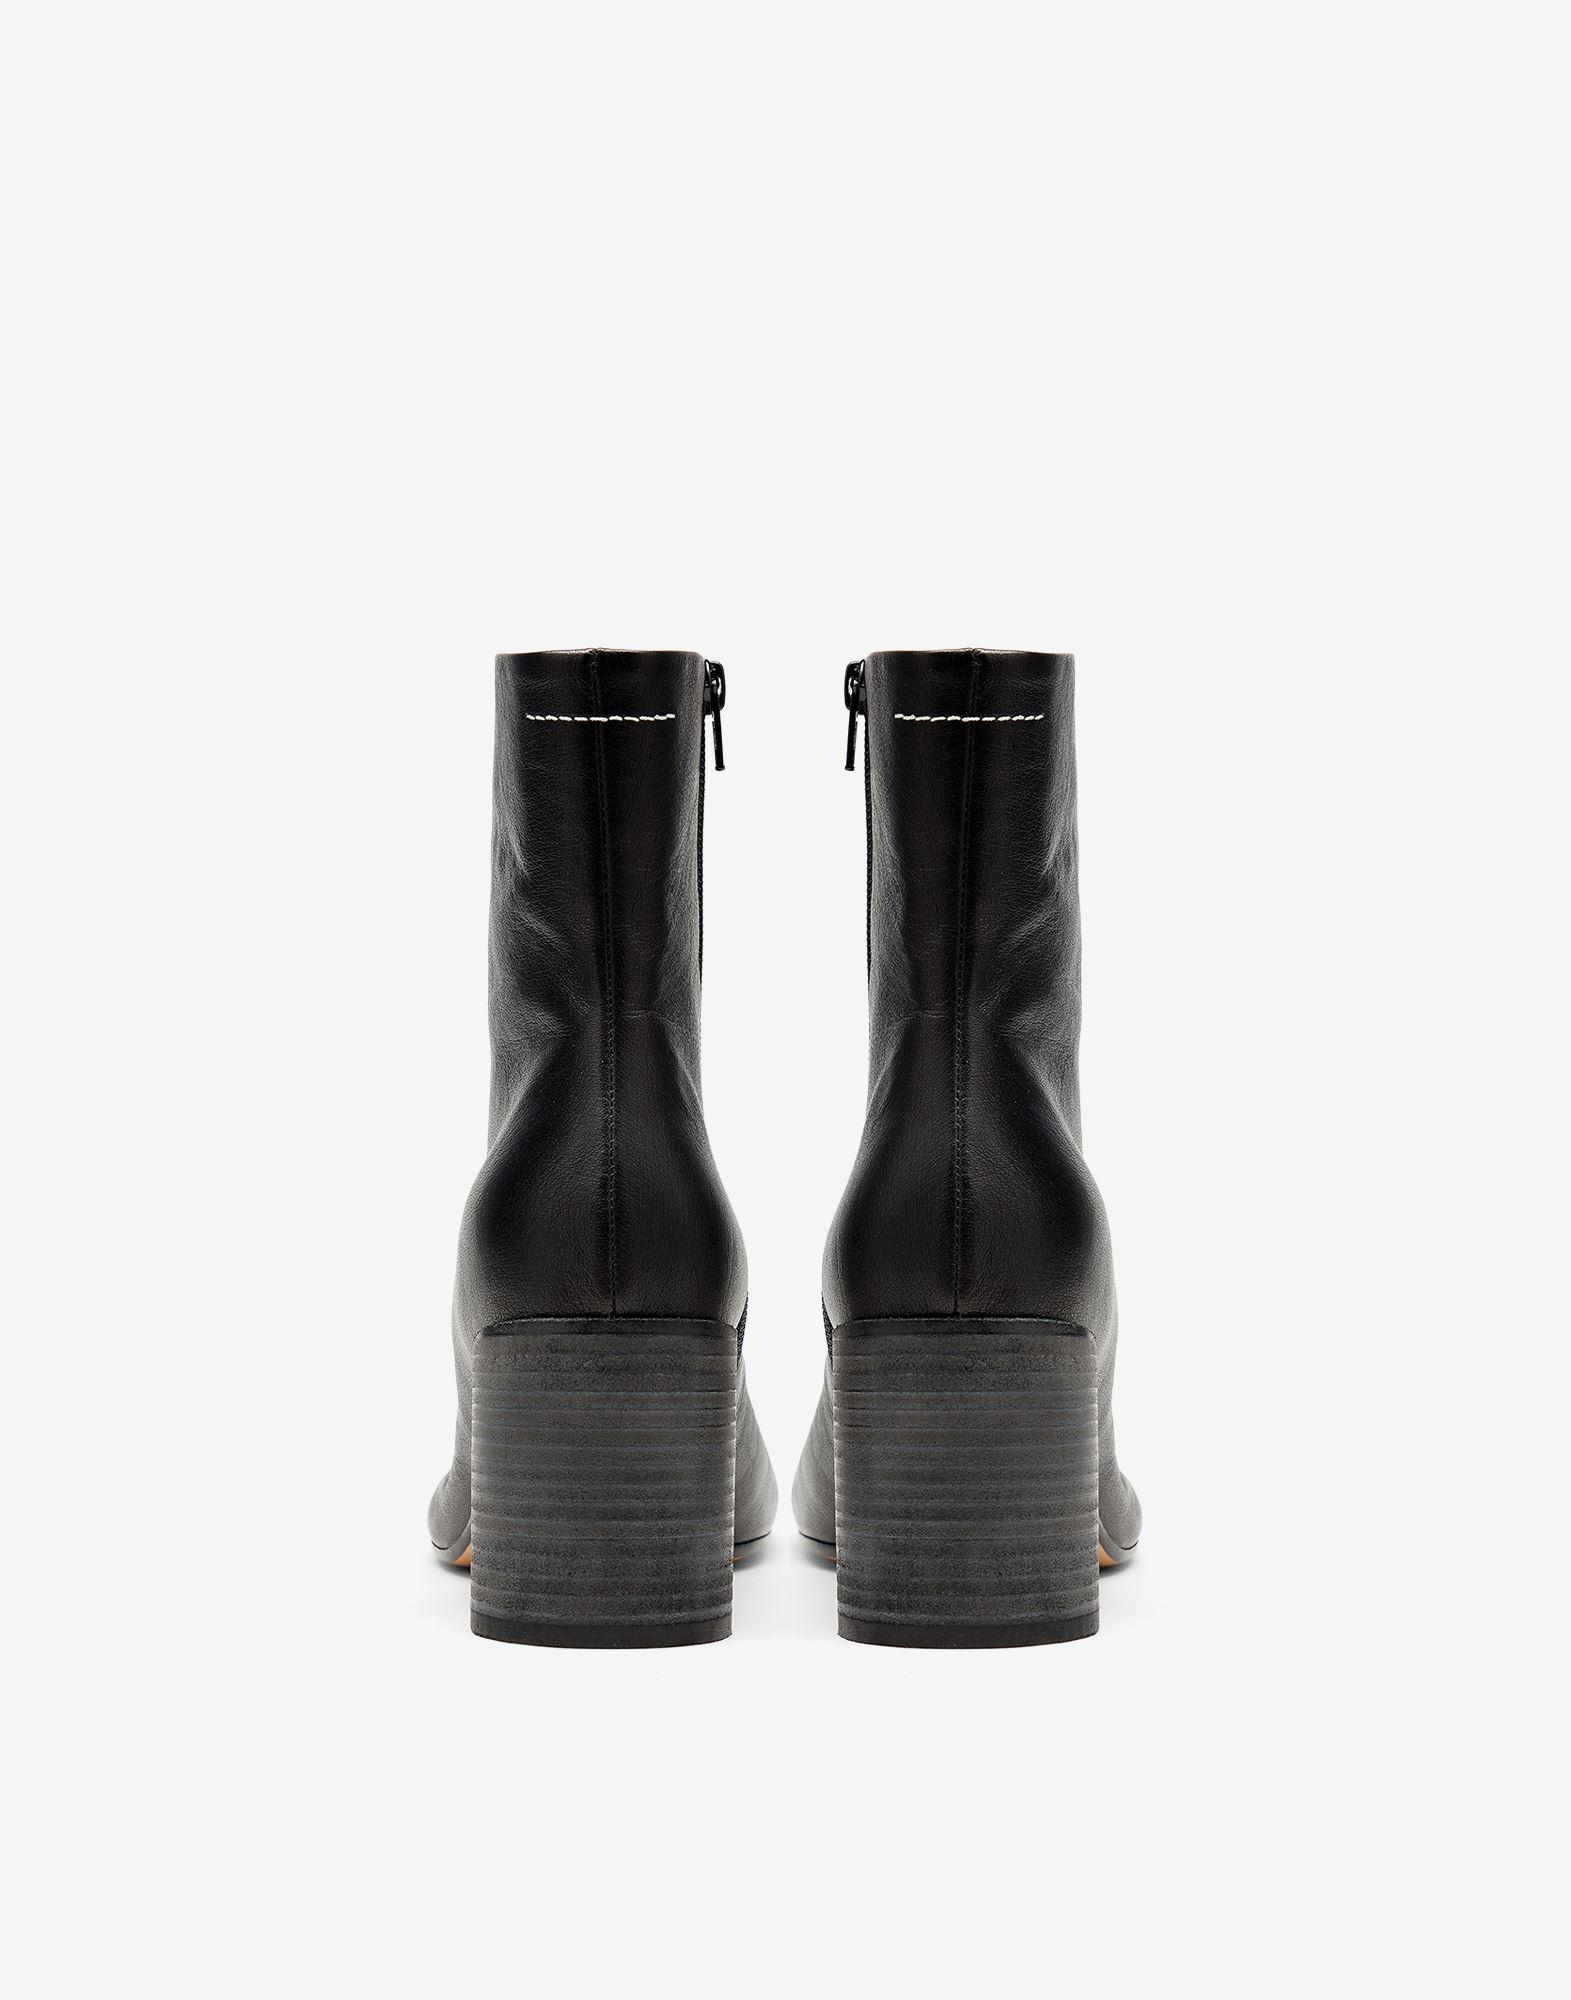 Anatomic ankle boots 2